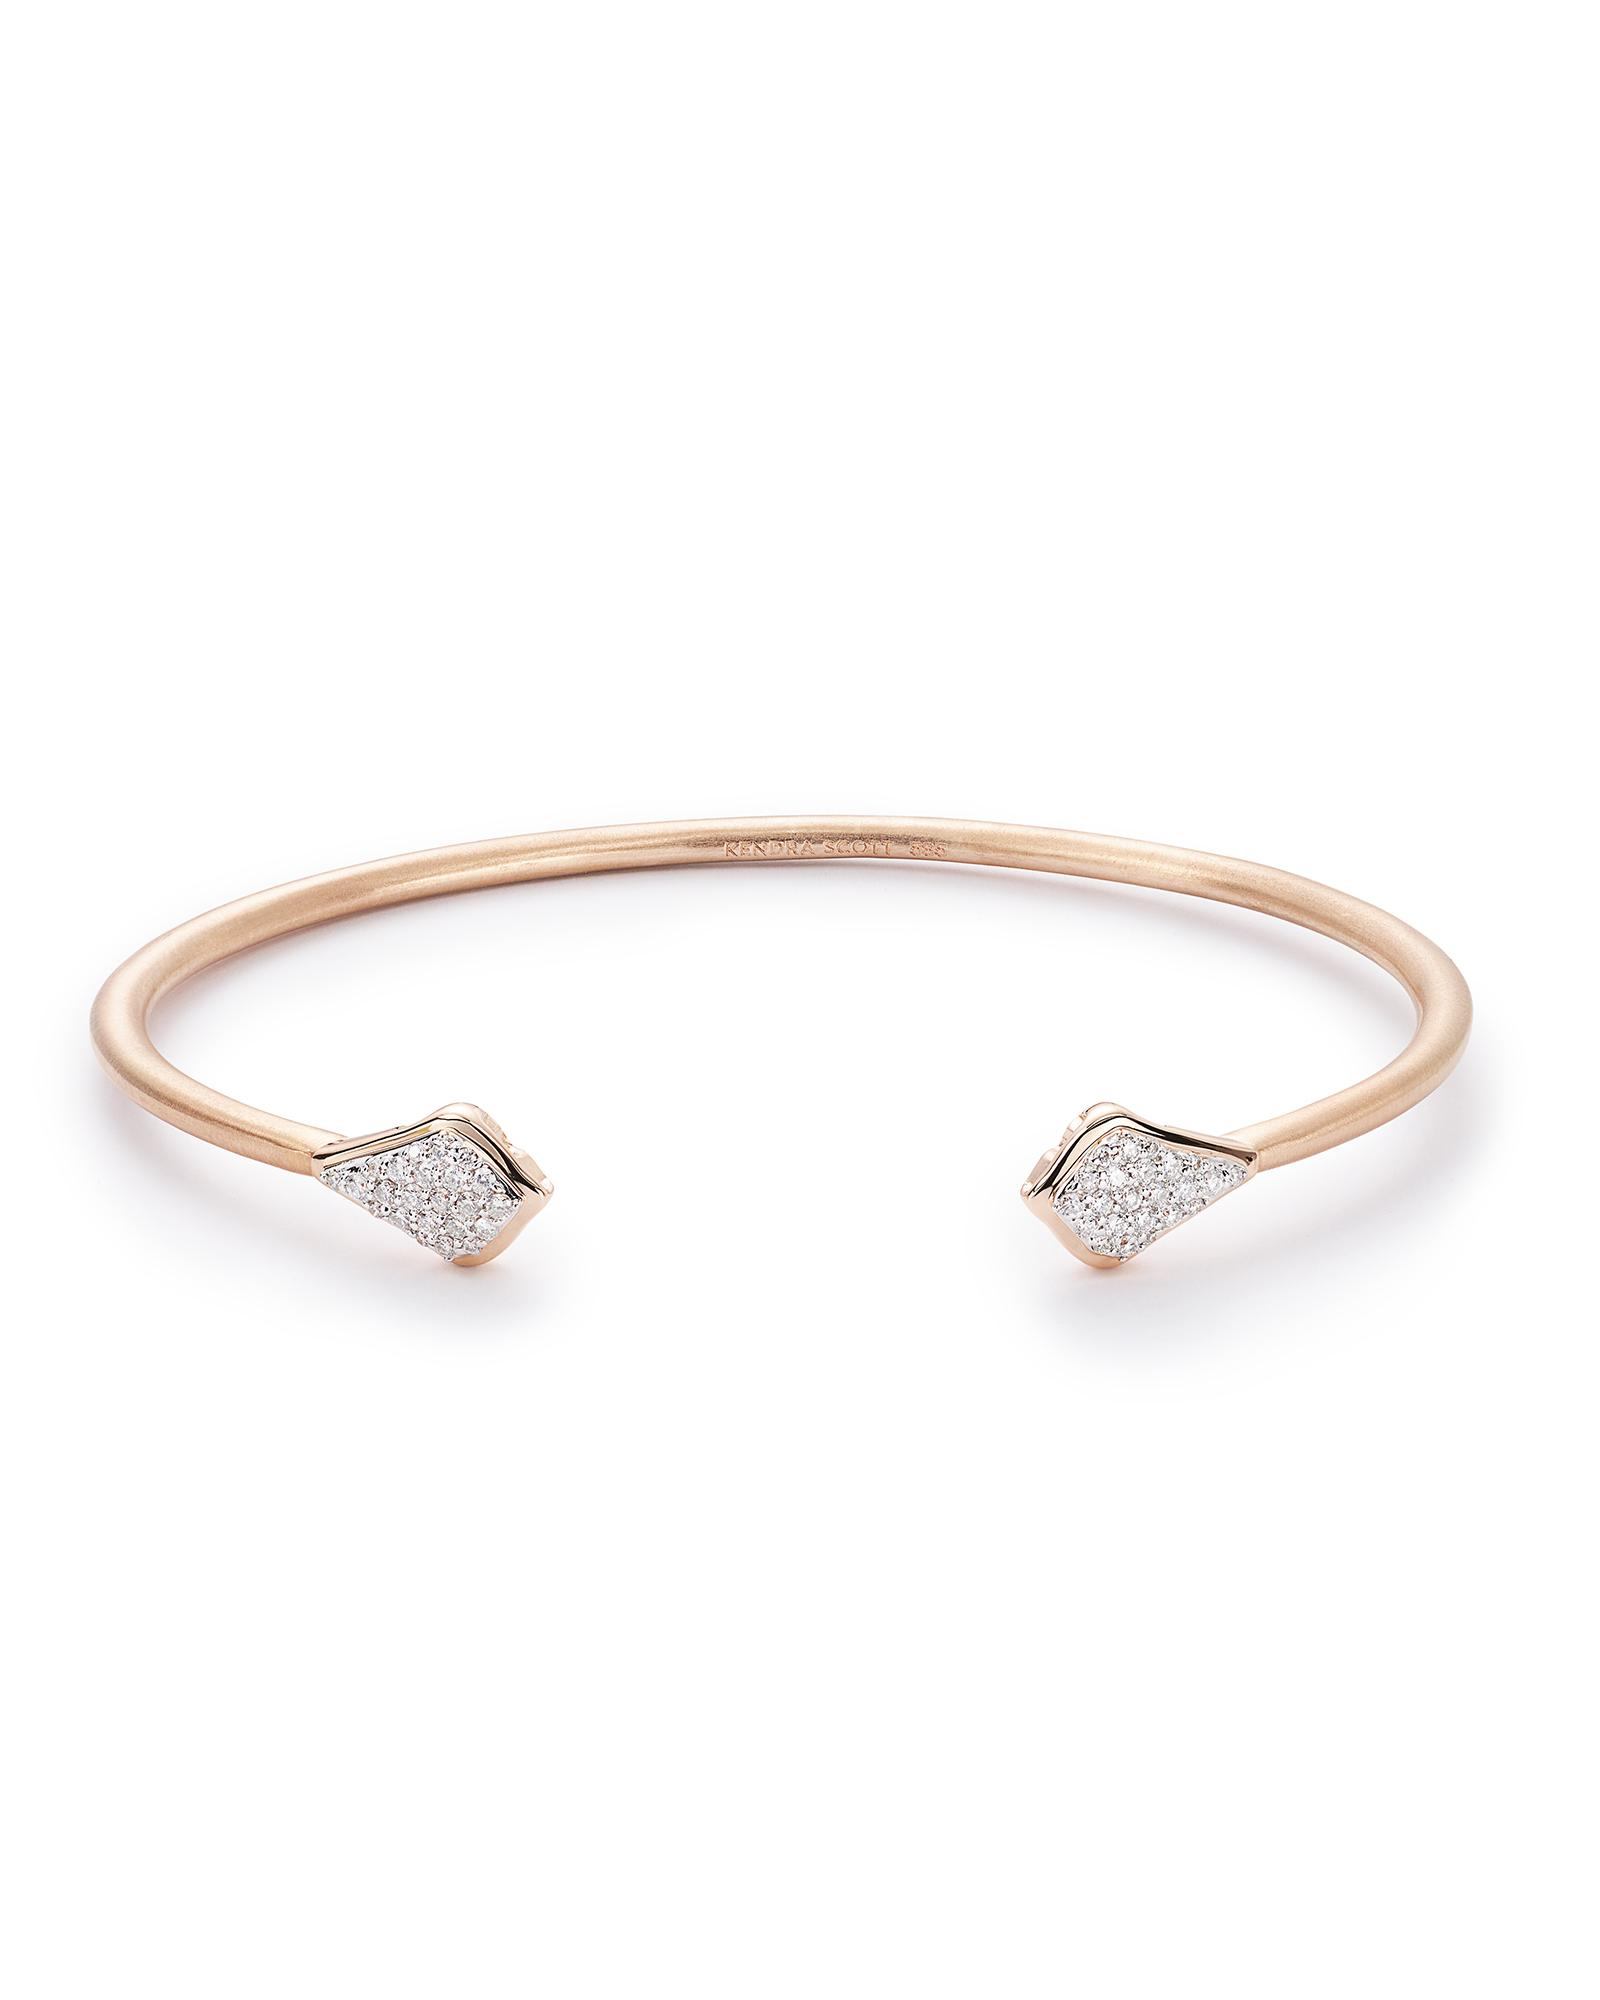 stretch bangle bangles cherished gold pendent original filled by product rose bracelet oh version ohsocherished so